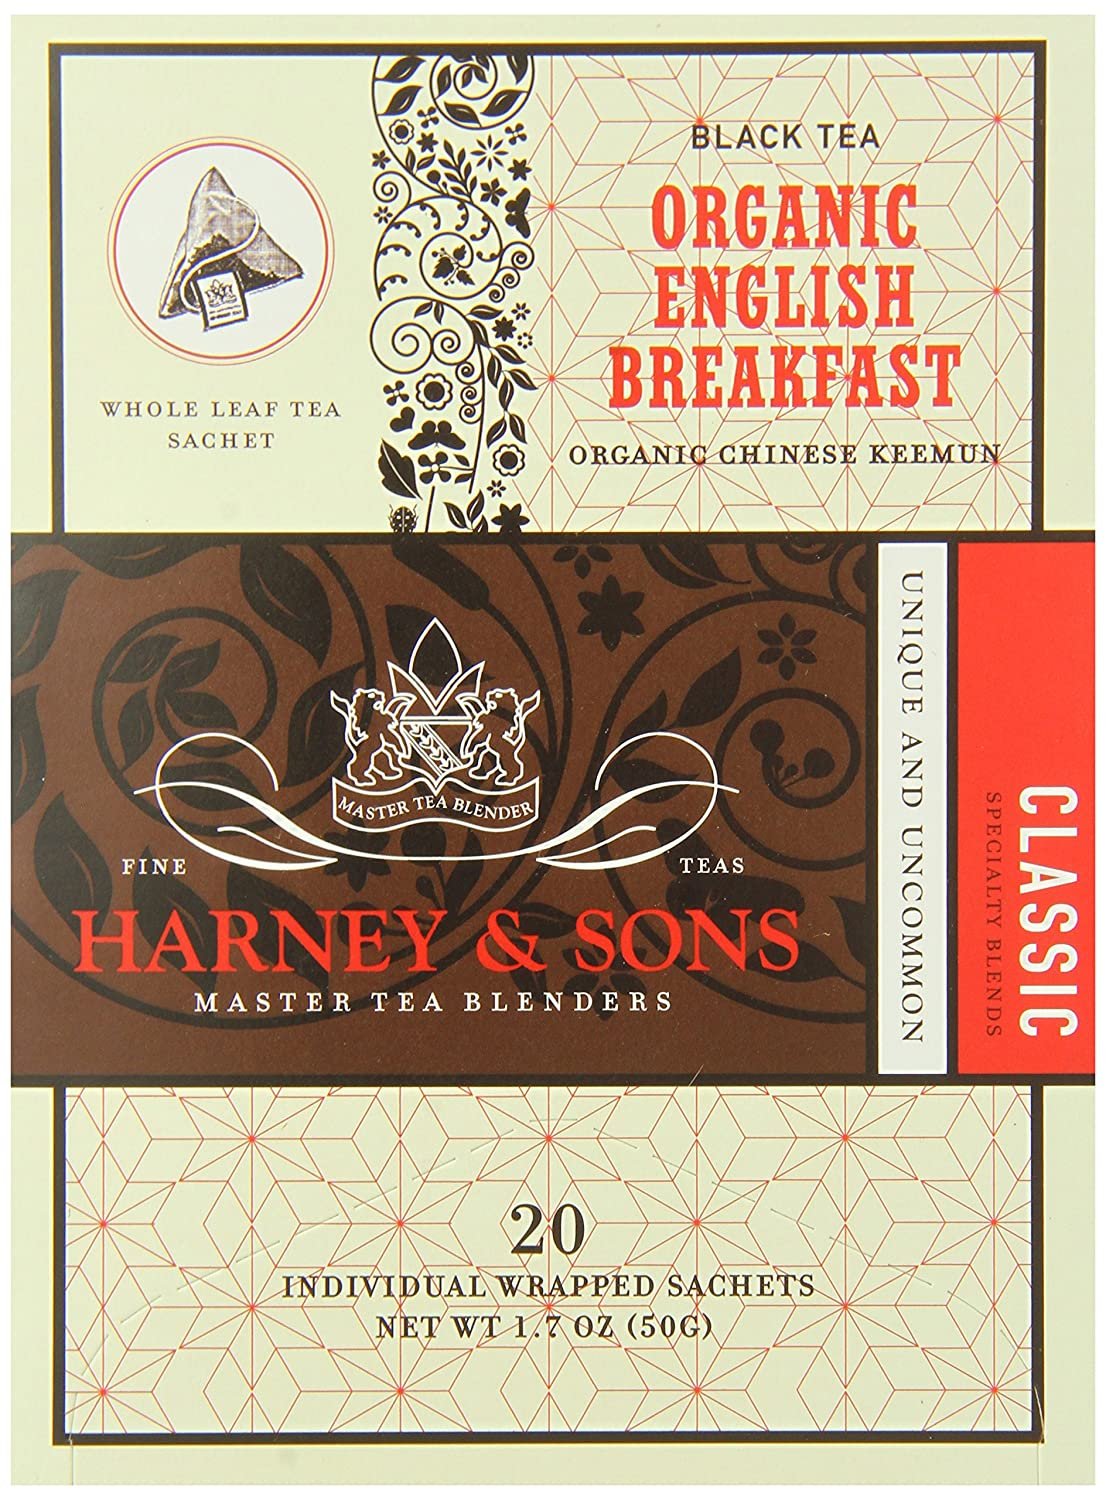 B002YW78RU Harney & Sons Organic English Breakfast Black Tea, Wrapped Sachets 20ct (Pack of 6) 91bjxoJZIdL